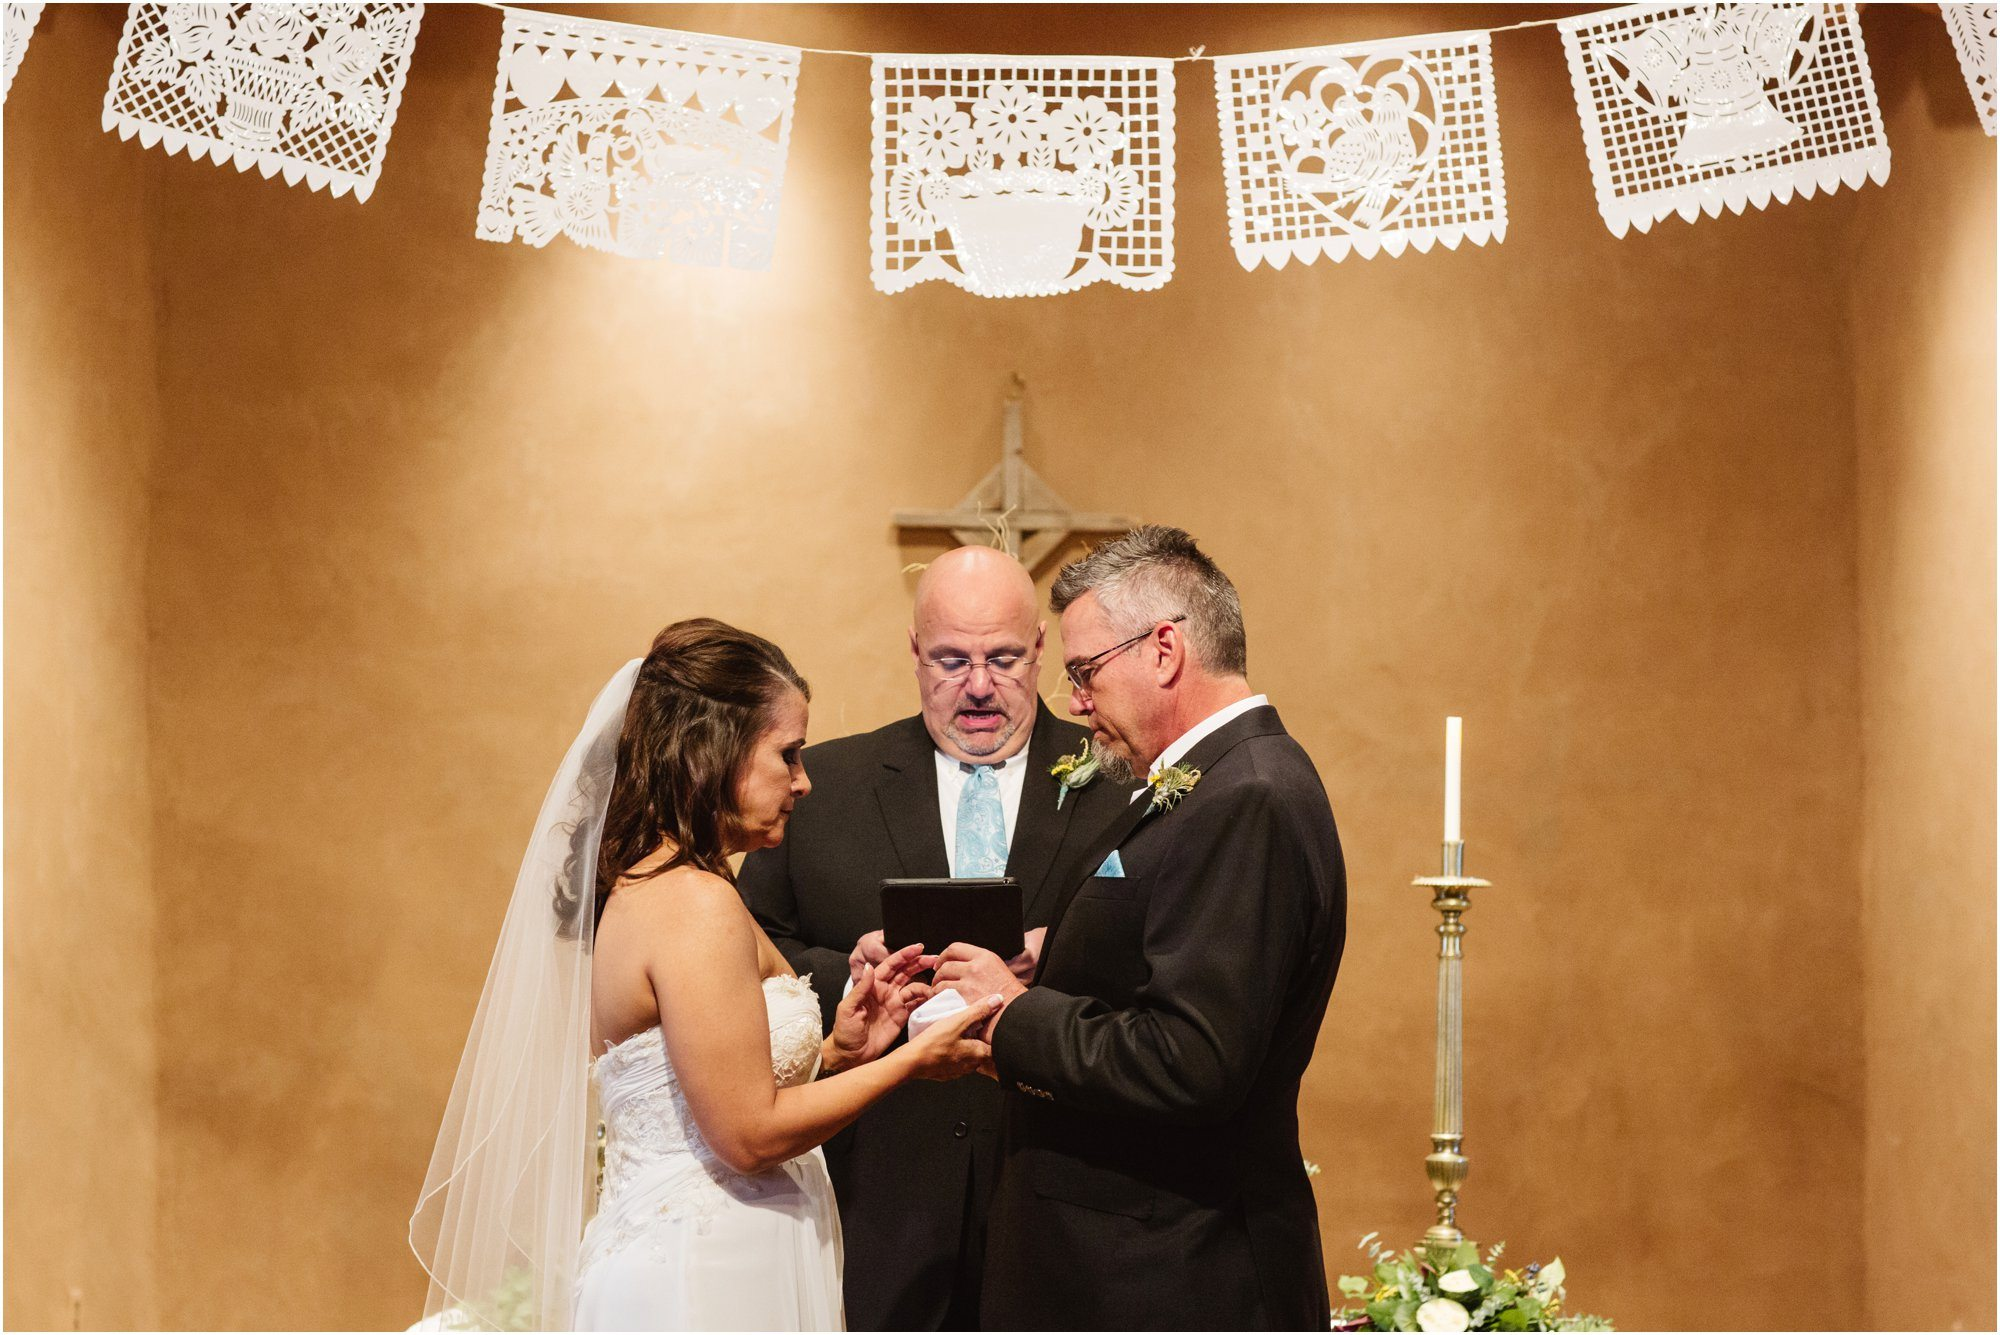 048BlueRosePhotography_ Albuquerque wedding photographers